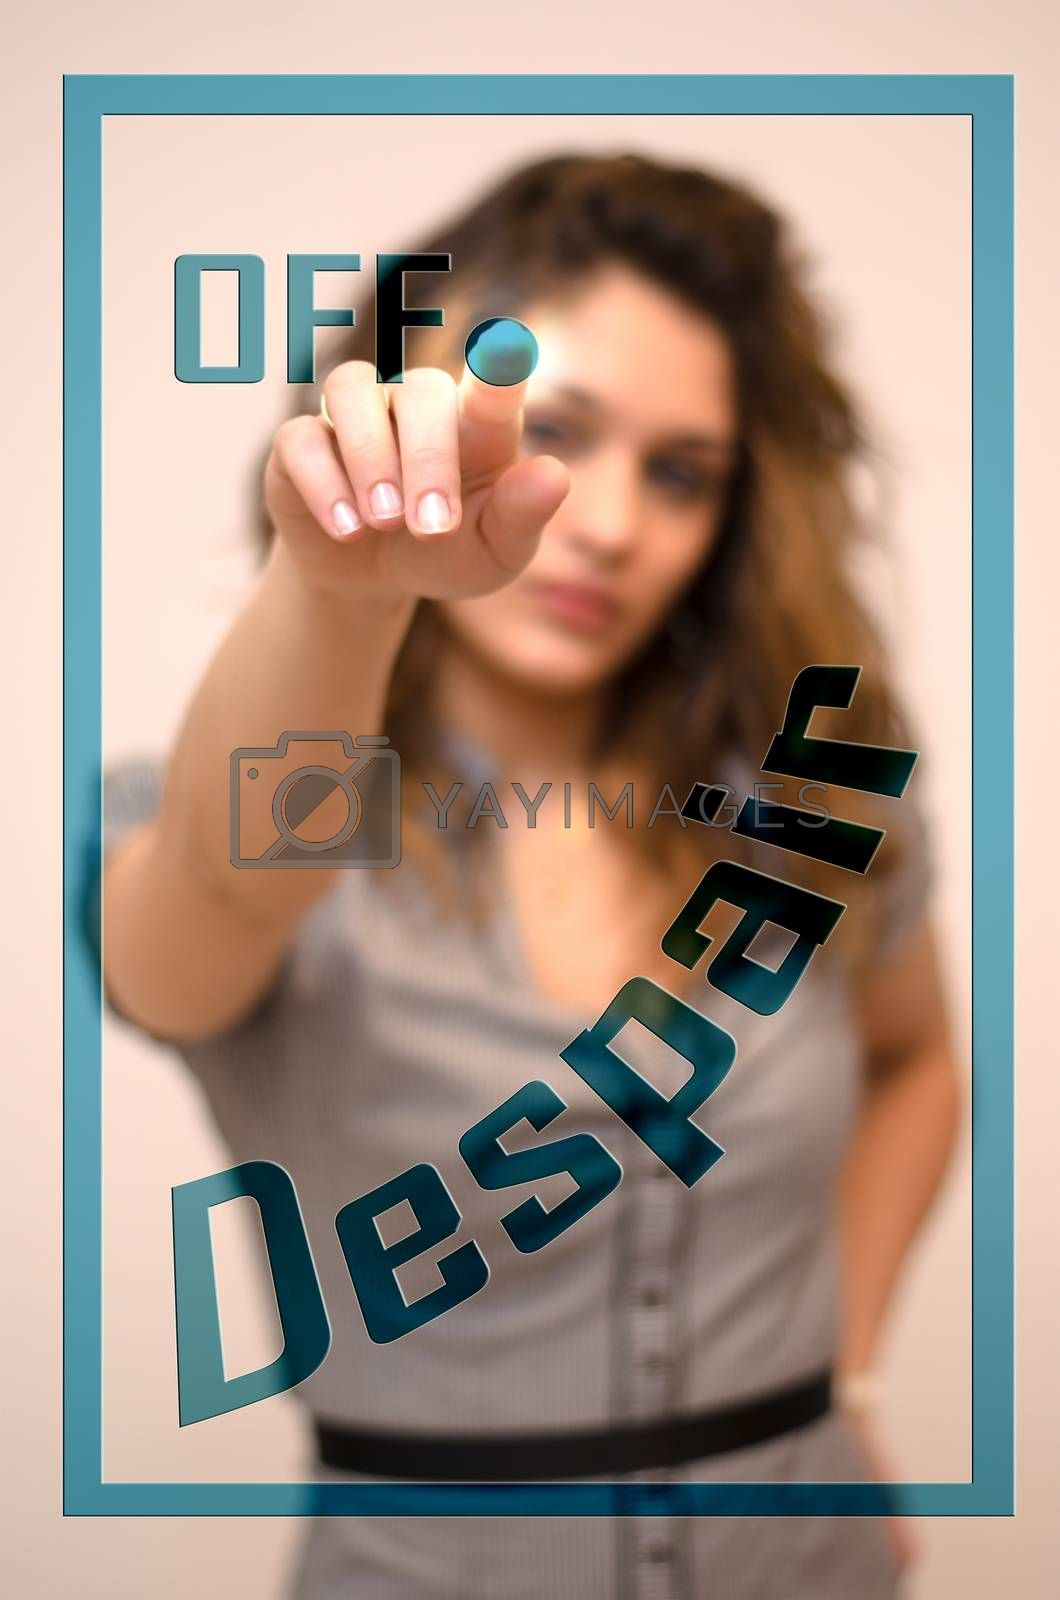 Royalty free image of woman turning off Despair on panel by vepar5